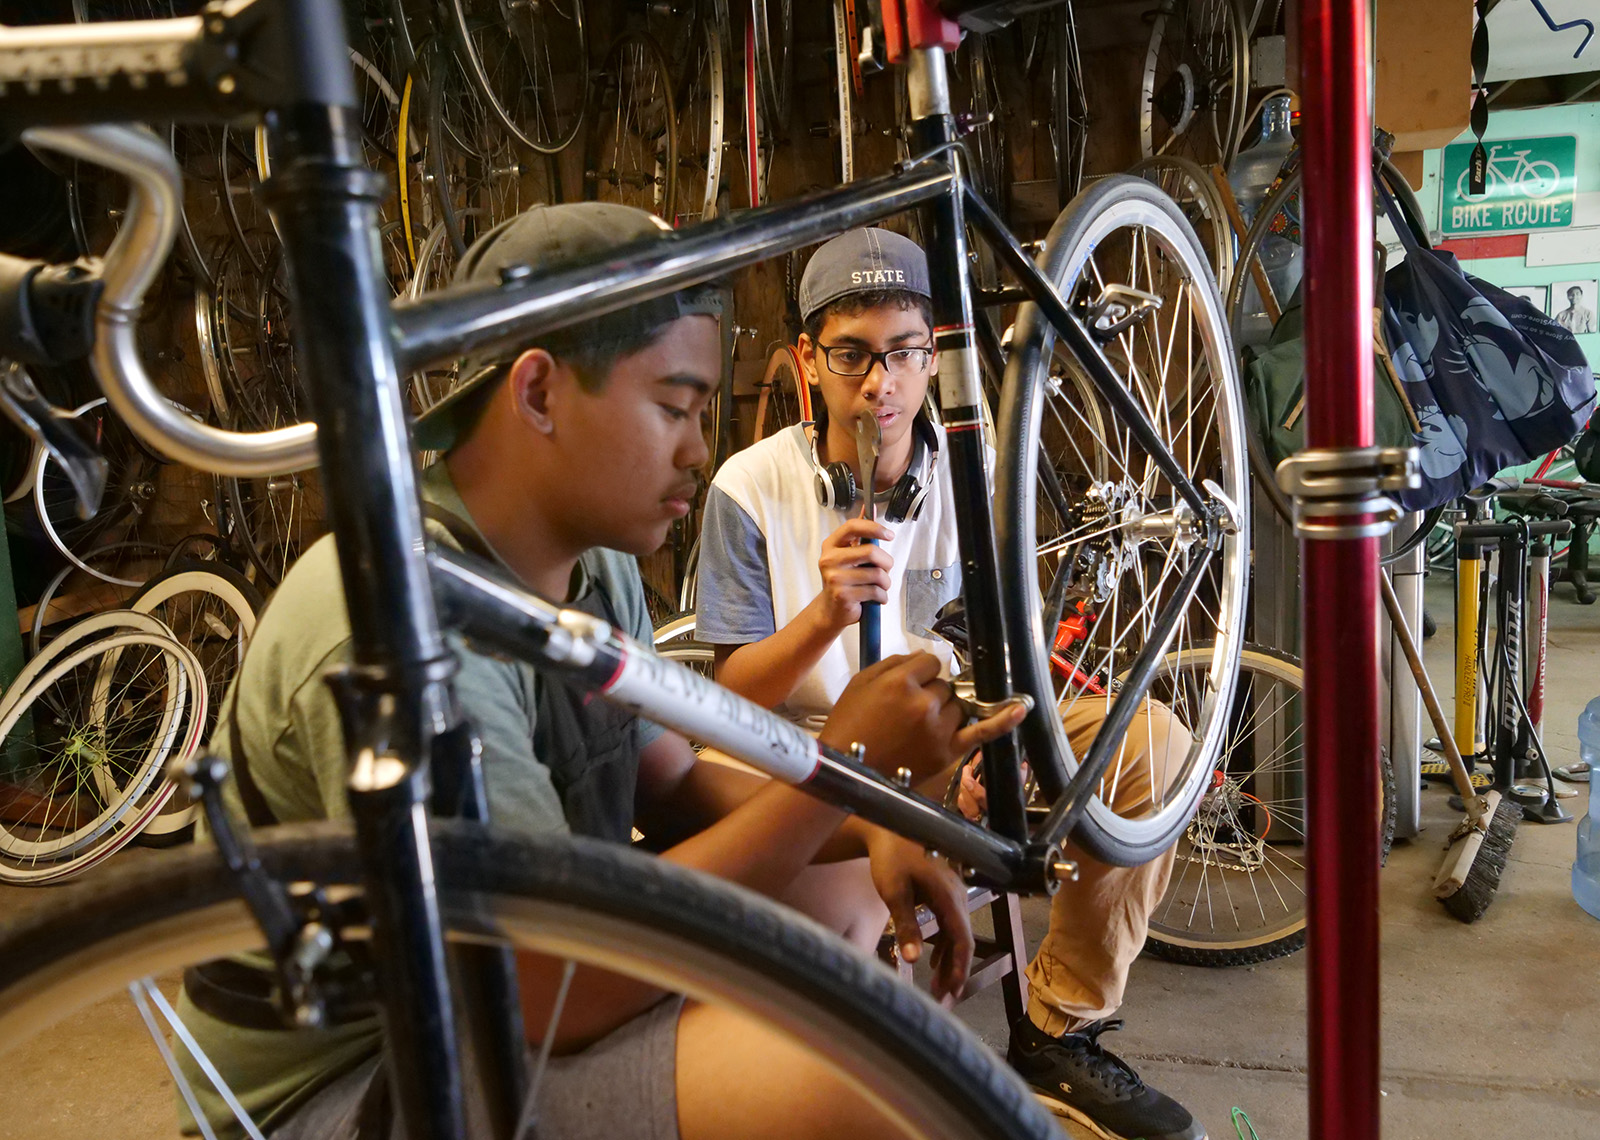 "<p>Lesson Guarin, left, and Aliipo Edgar work on a bicycle Feb. 20 that now belongs to Aliipo thanks to his hours of volunteering at the bike shop. The program gives kids a safe place to socialize and learn skills, but is also open to participants ""as young as 77 years,"" says KVIBE director Kevin Faller.</p>"